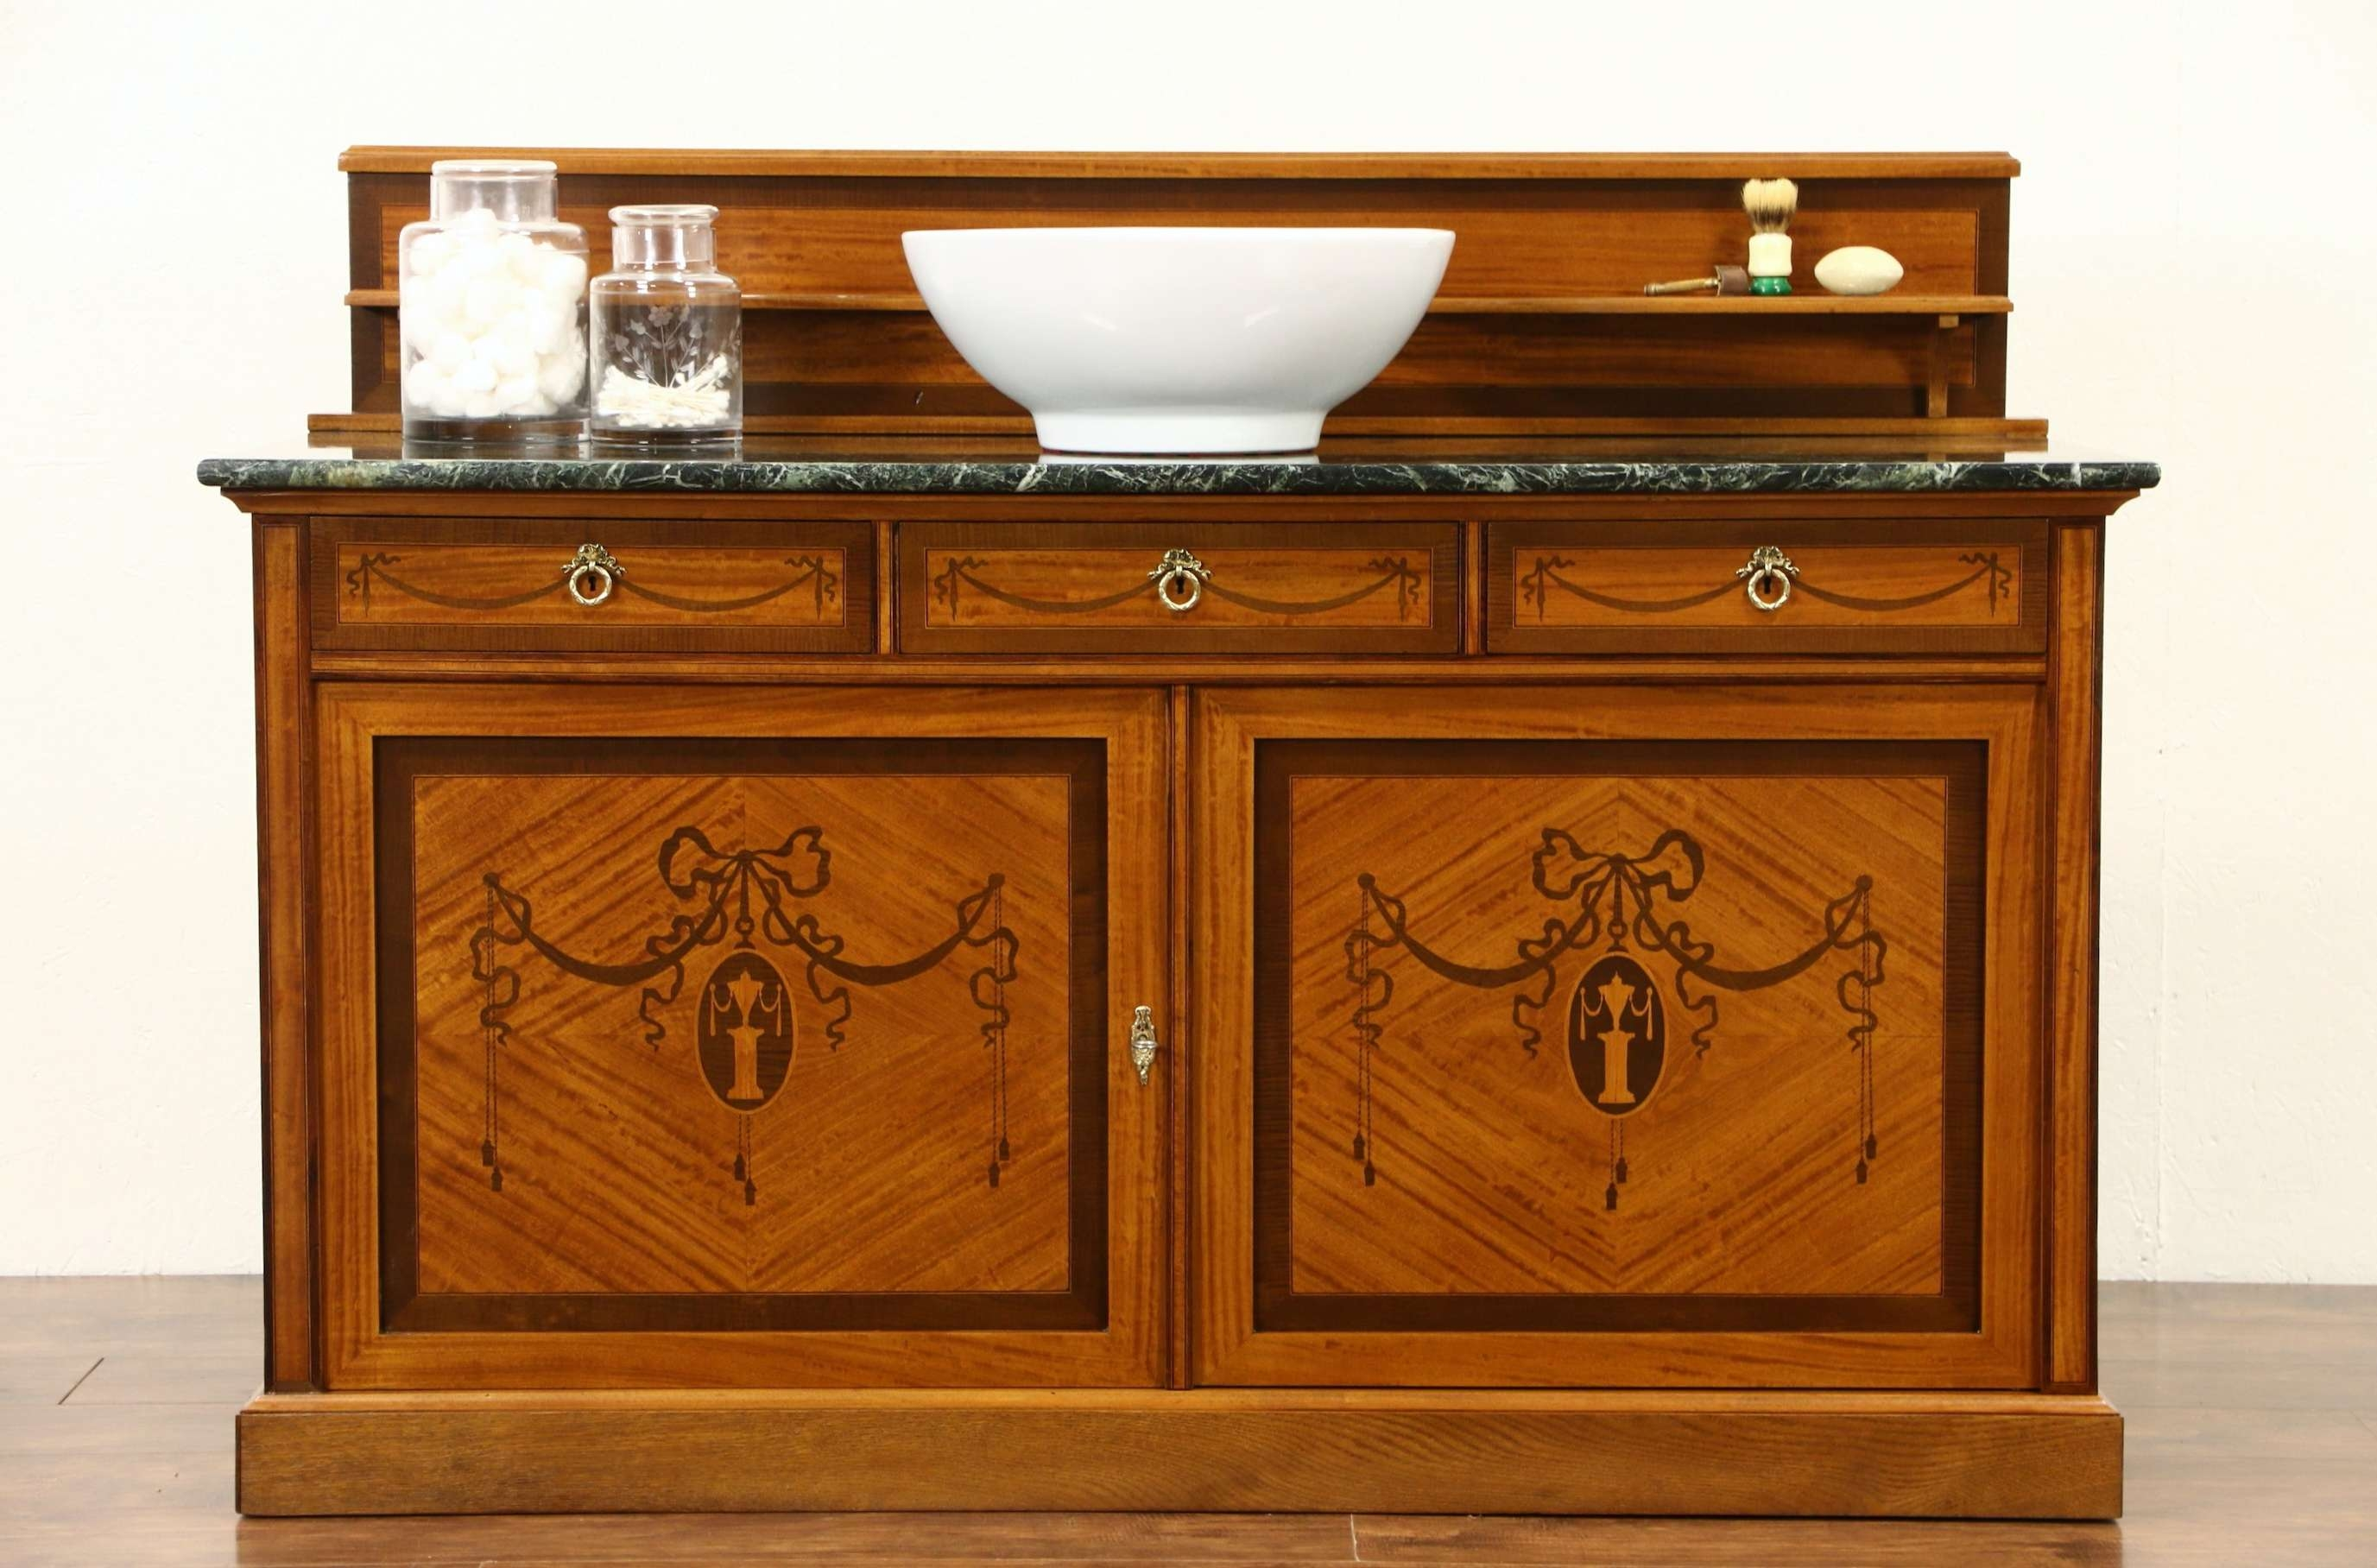 Sold – French 1915 Antique Marble Top Sideboard, Server, Bar Or Pertaining To Antique Marble Top Sideboards (View 11 of 20)